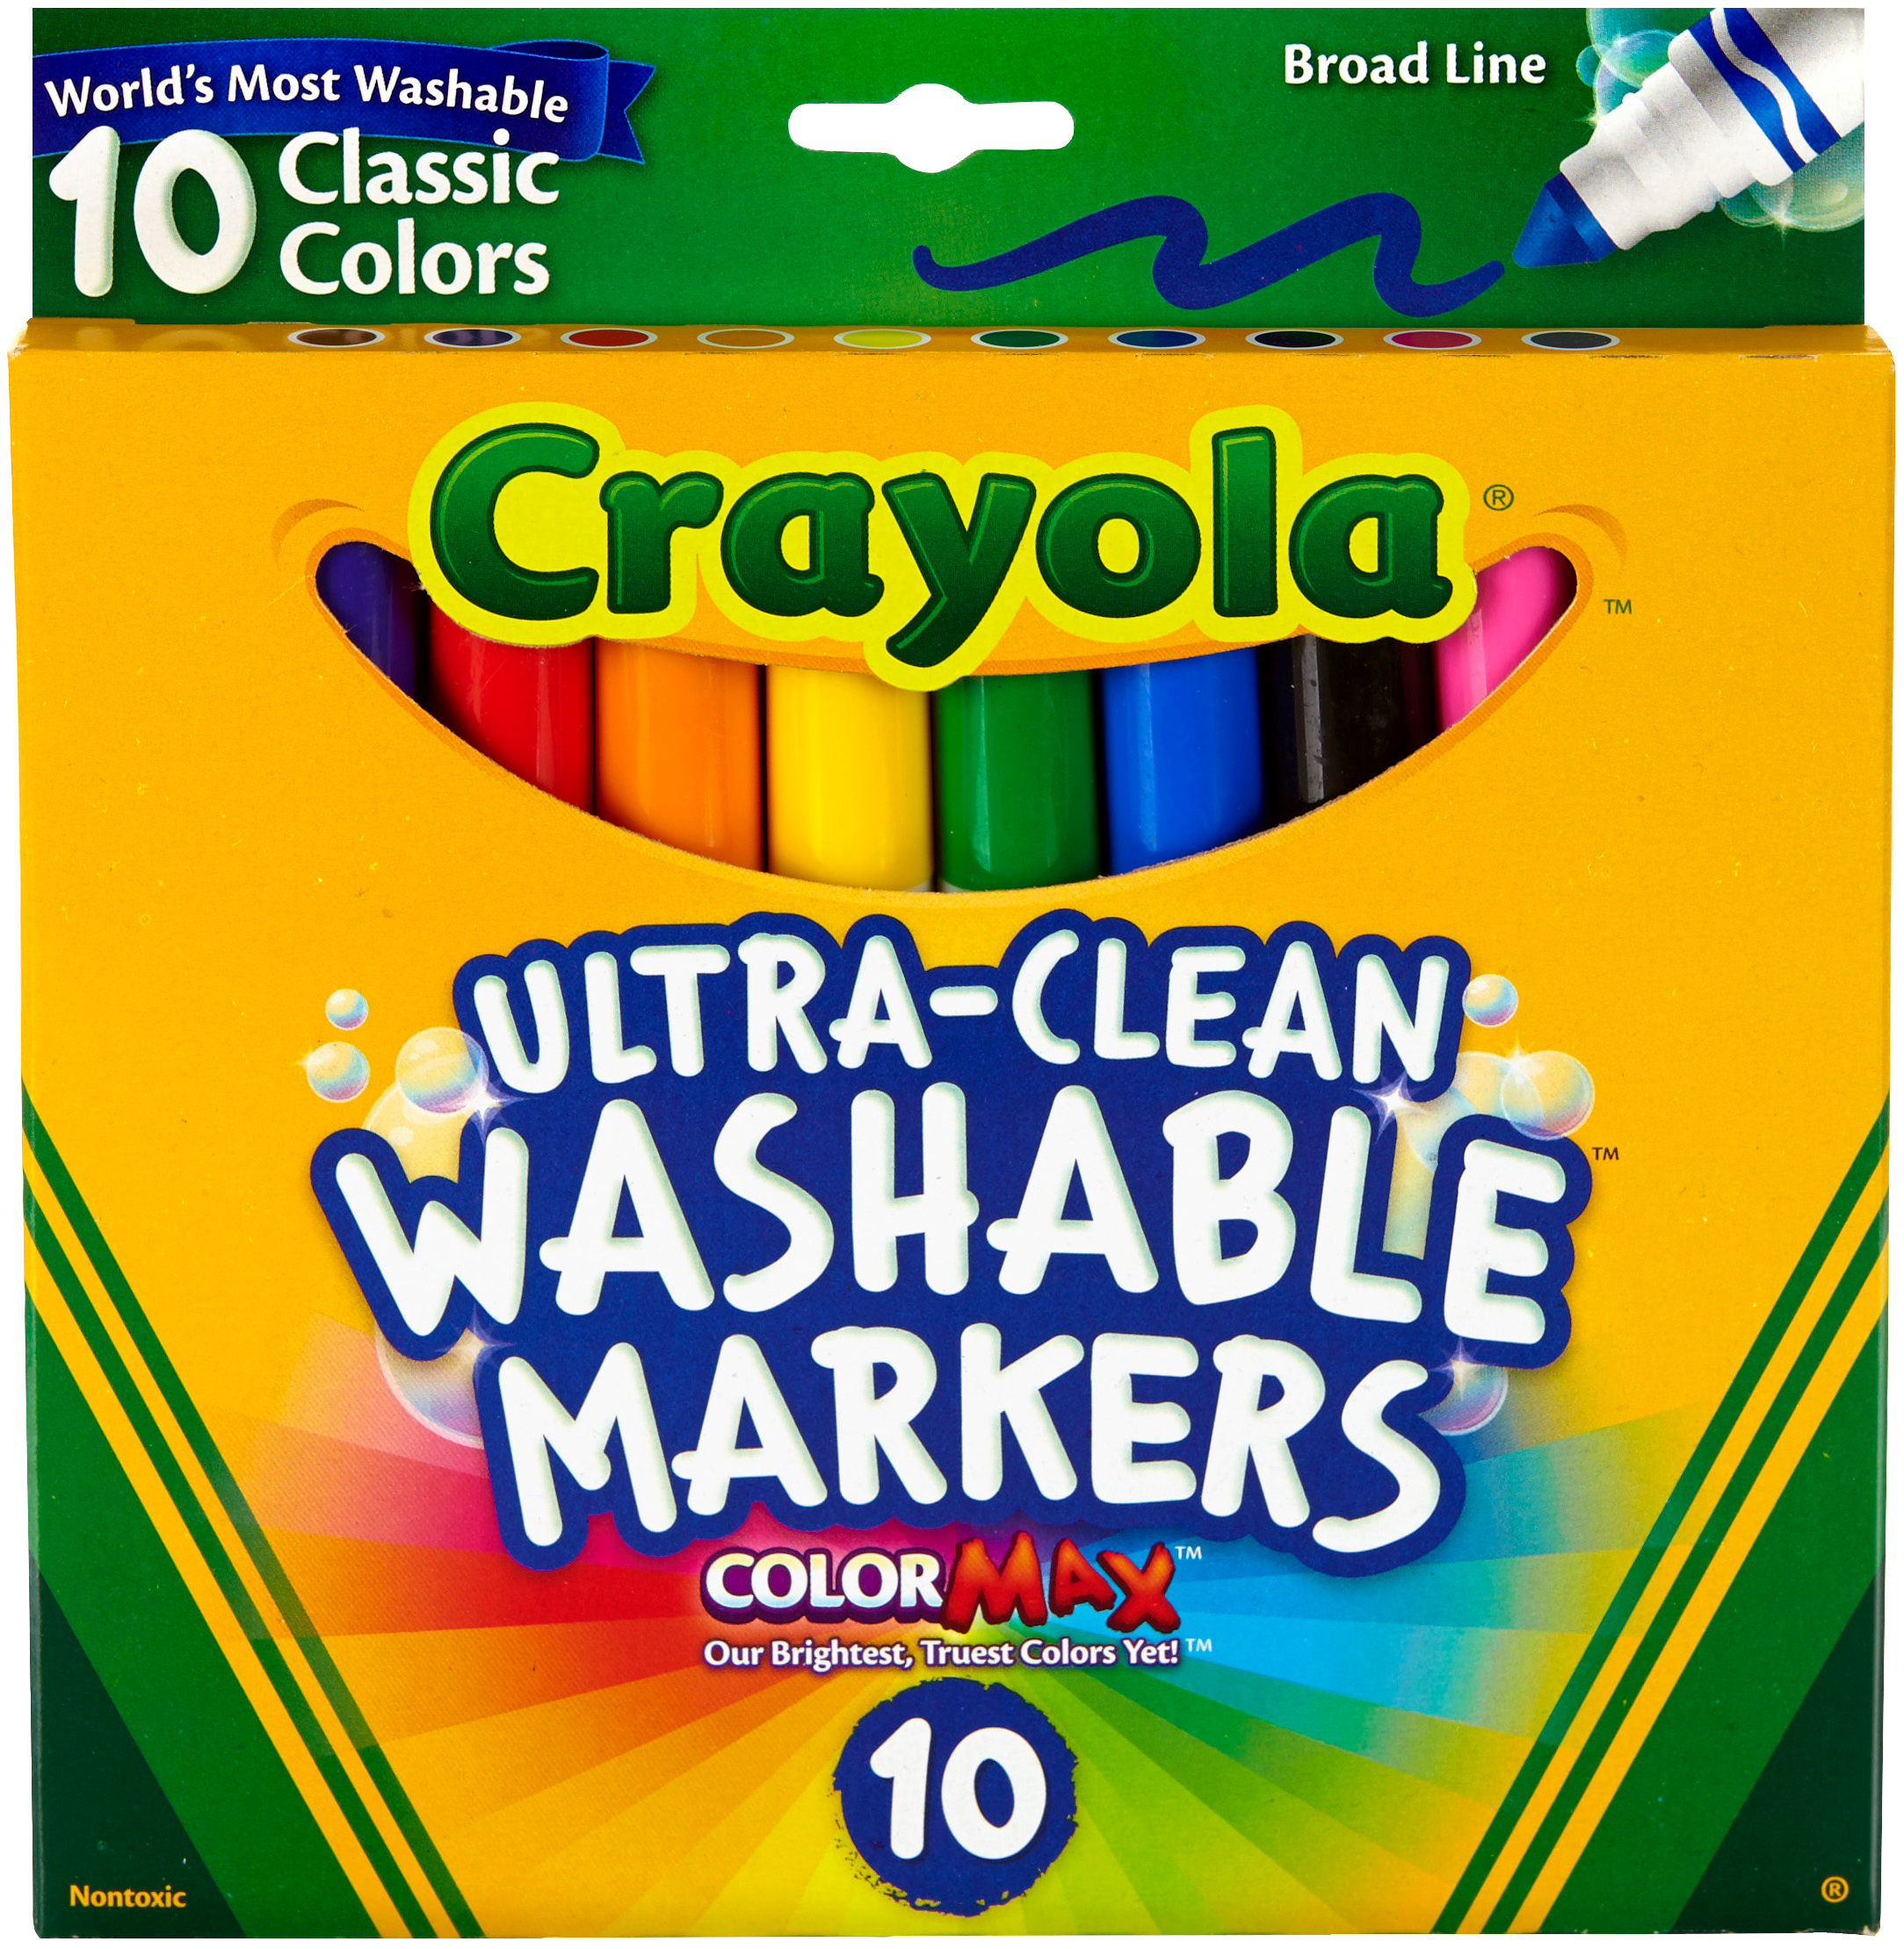 Crayola Ultra-Clean Color Max Broad Line Washable Markers